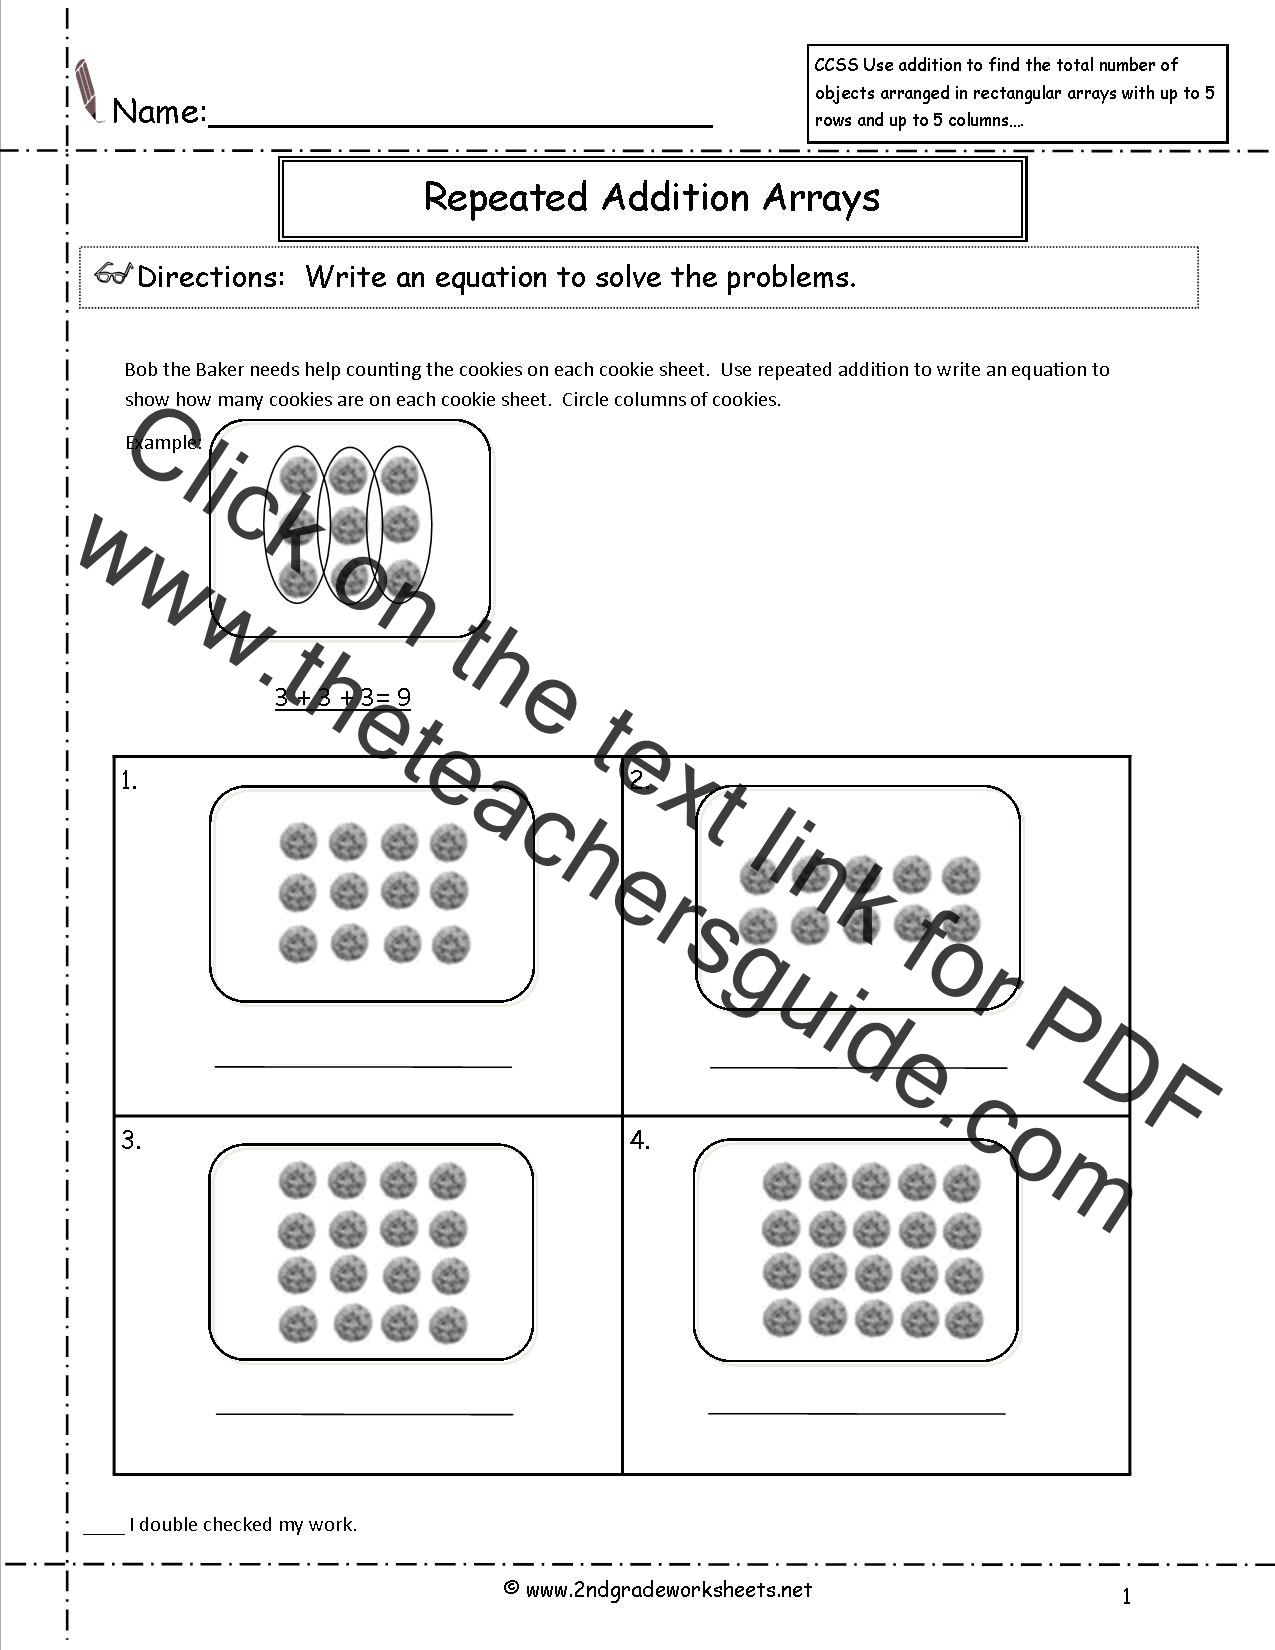 CCSS 2OA4 Worksheets – Common Core 2nd Grade Math Worksheets